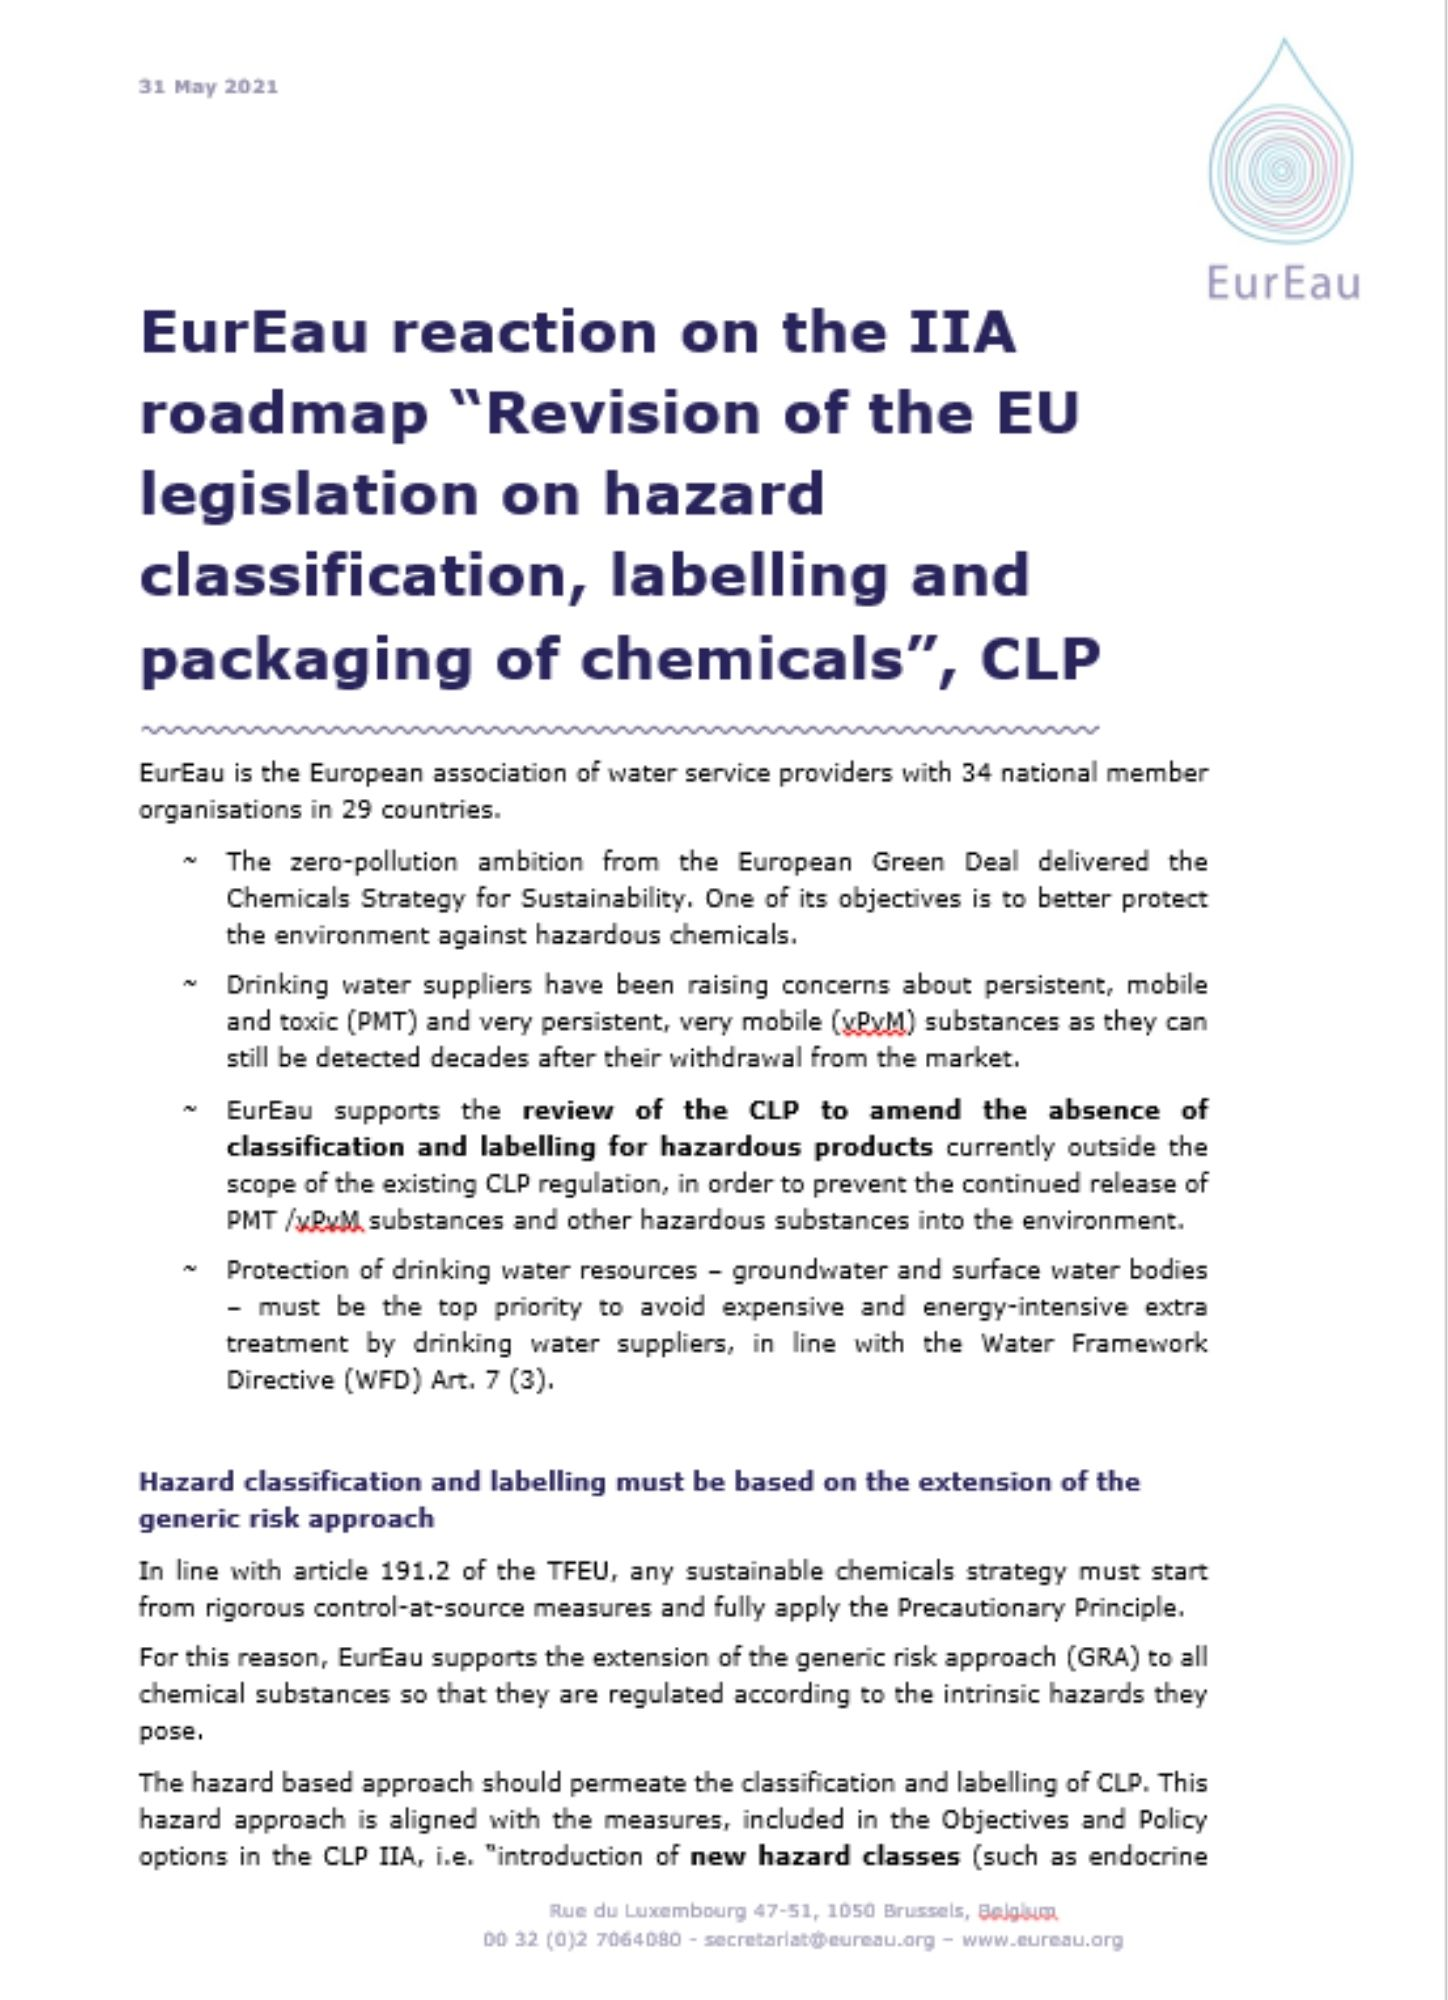 EurEau feedback on the roadmap for the revision of the Classification, Labelling and Packaging (CLP) Regulation